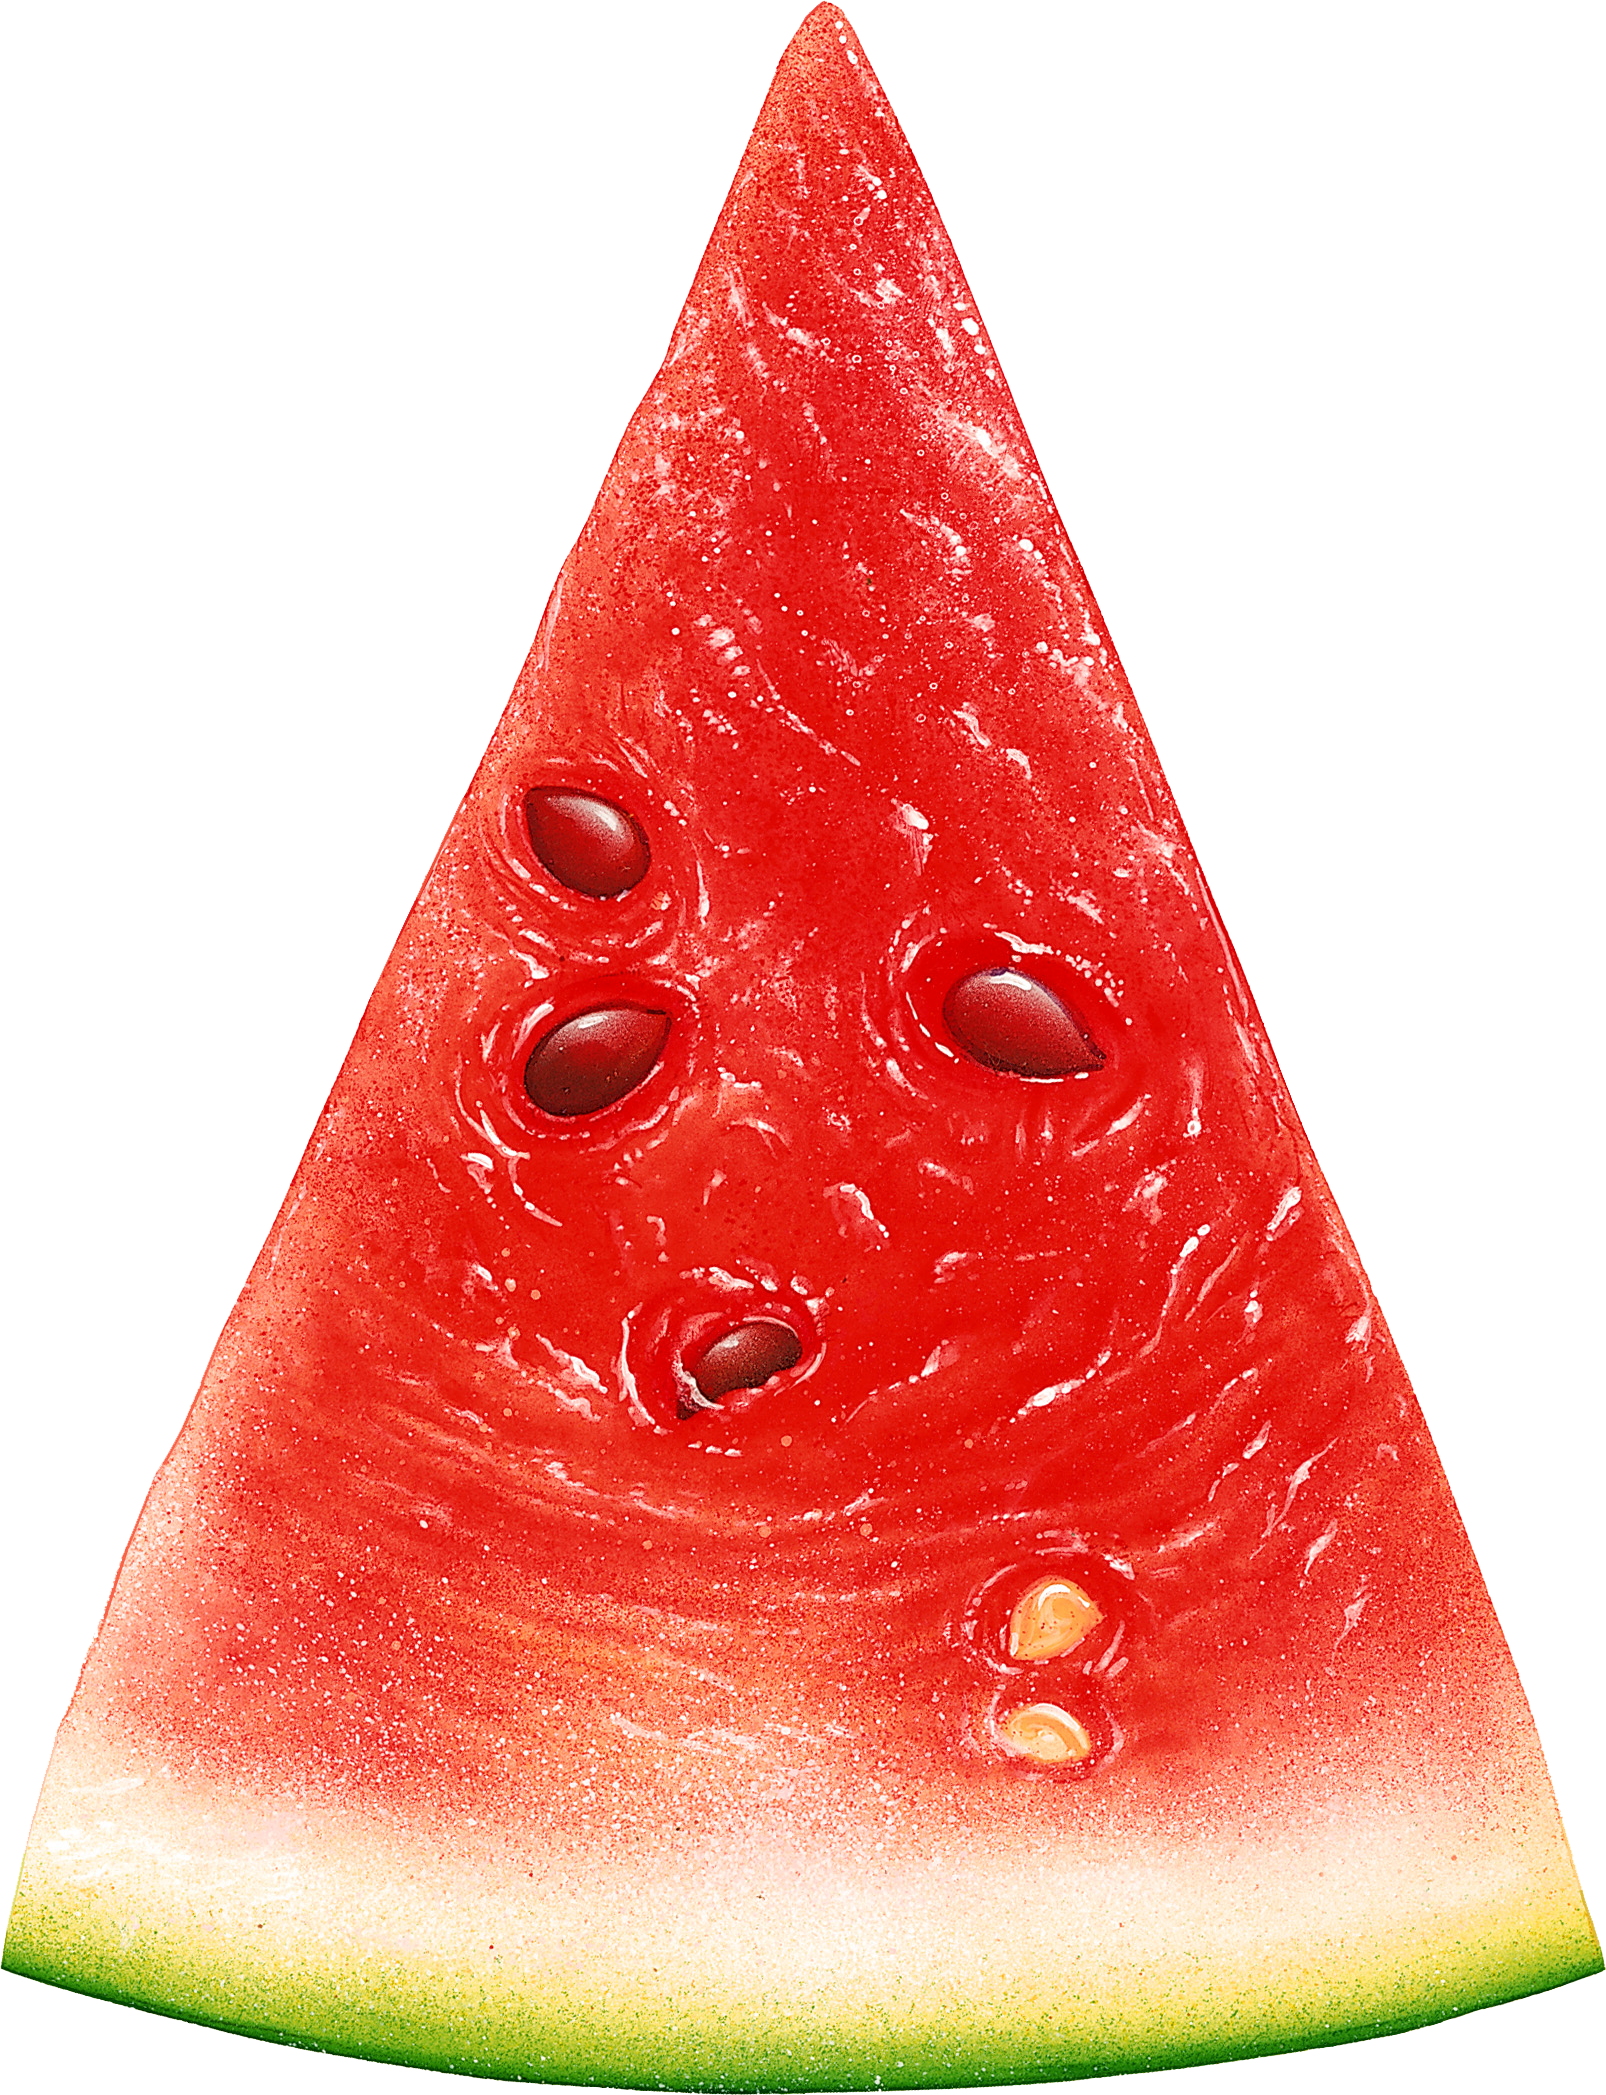 Watermelon PNG - 19190